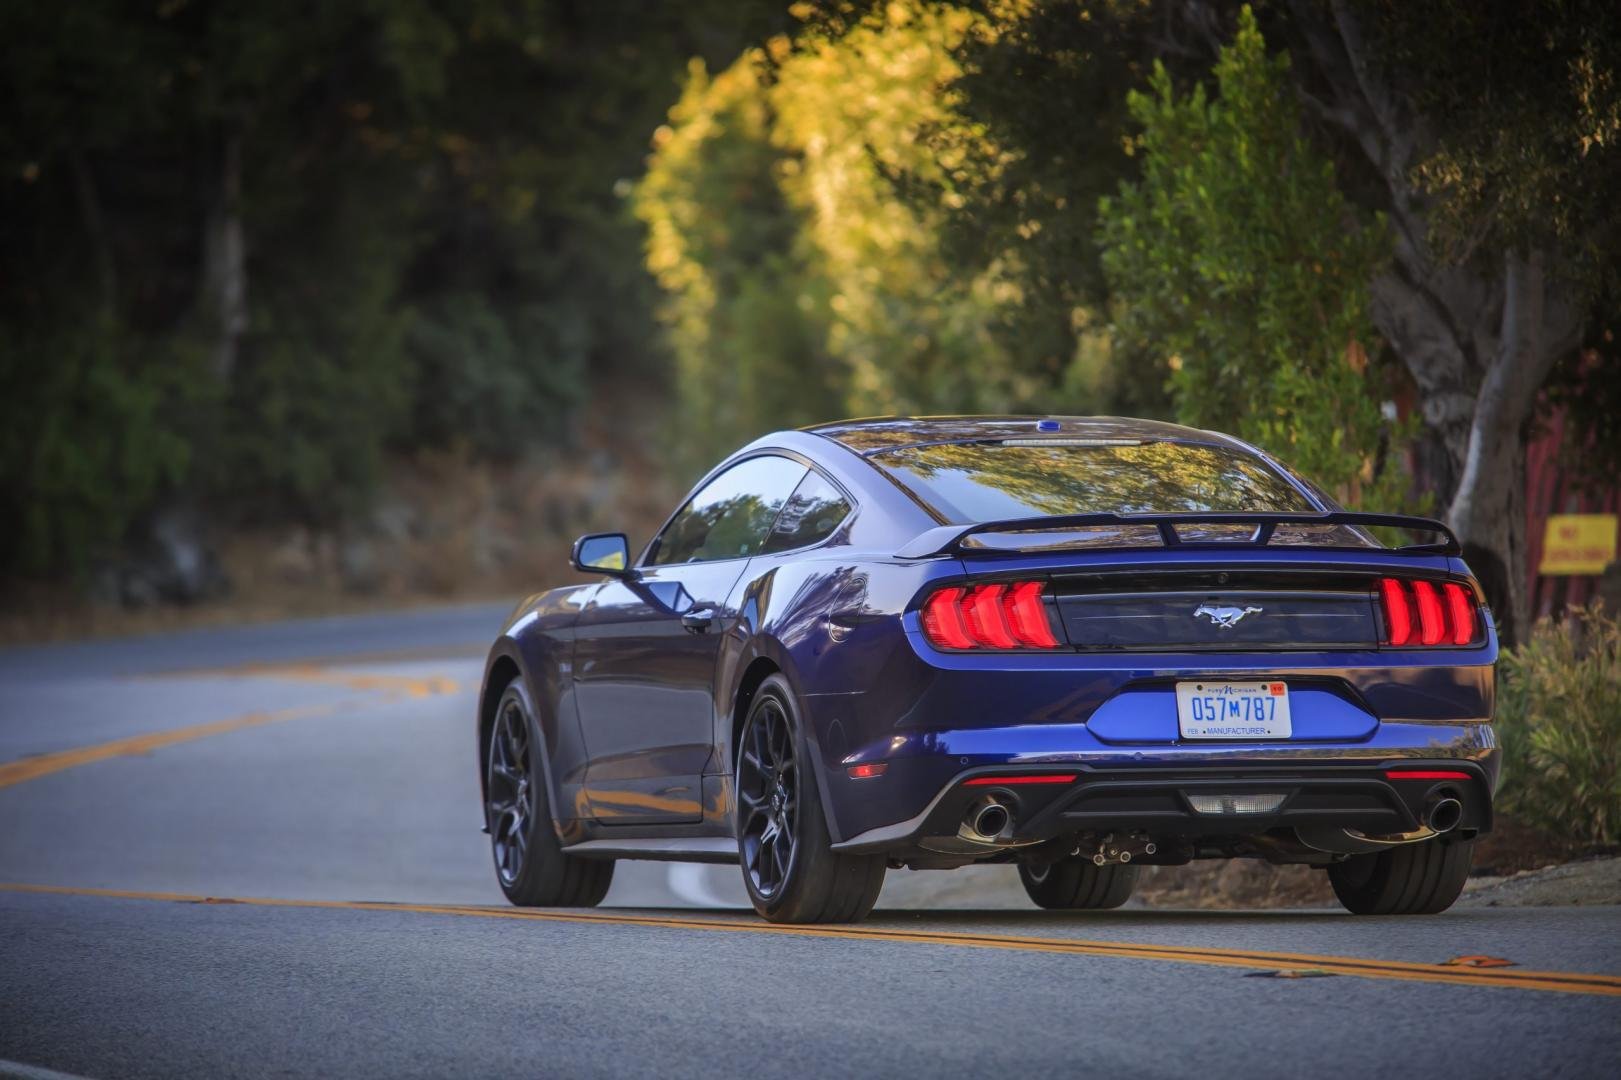 Ford Mustang Kona Blue with Performance Pack